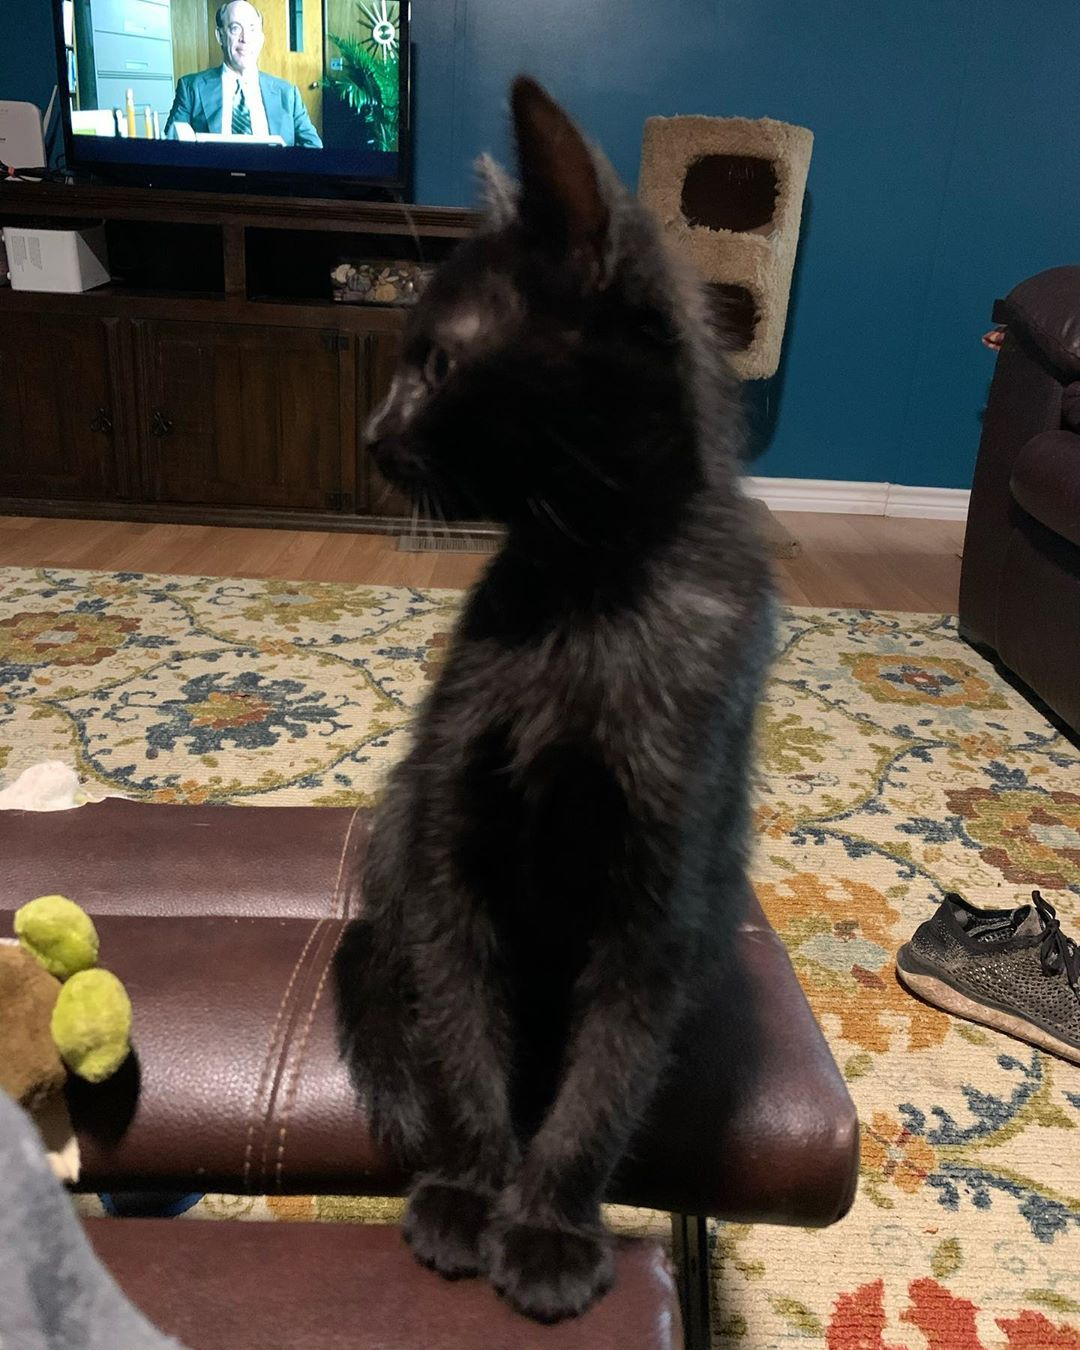 Mom Can You Stop Taking My Picture Blackkitten Blackkittensofinstagram Pepperthekitten Baby Cats Scared Cat Cute Cat Drawing